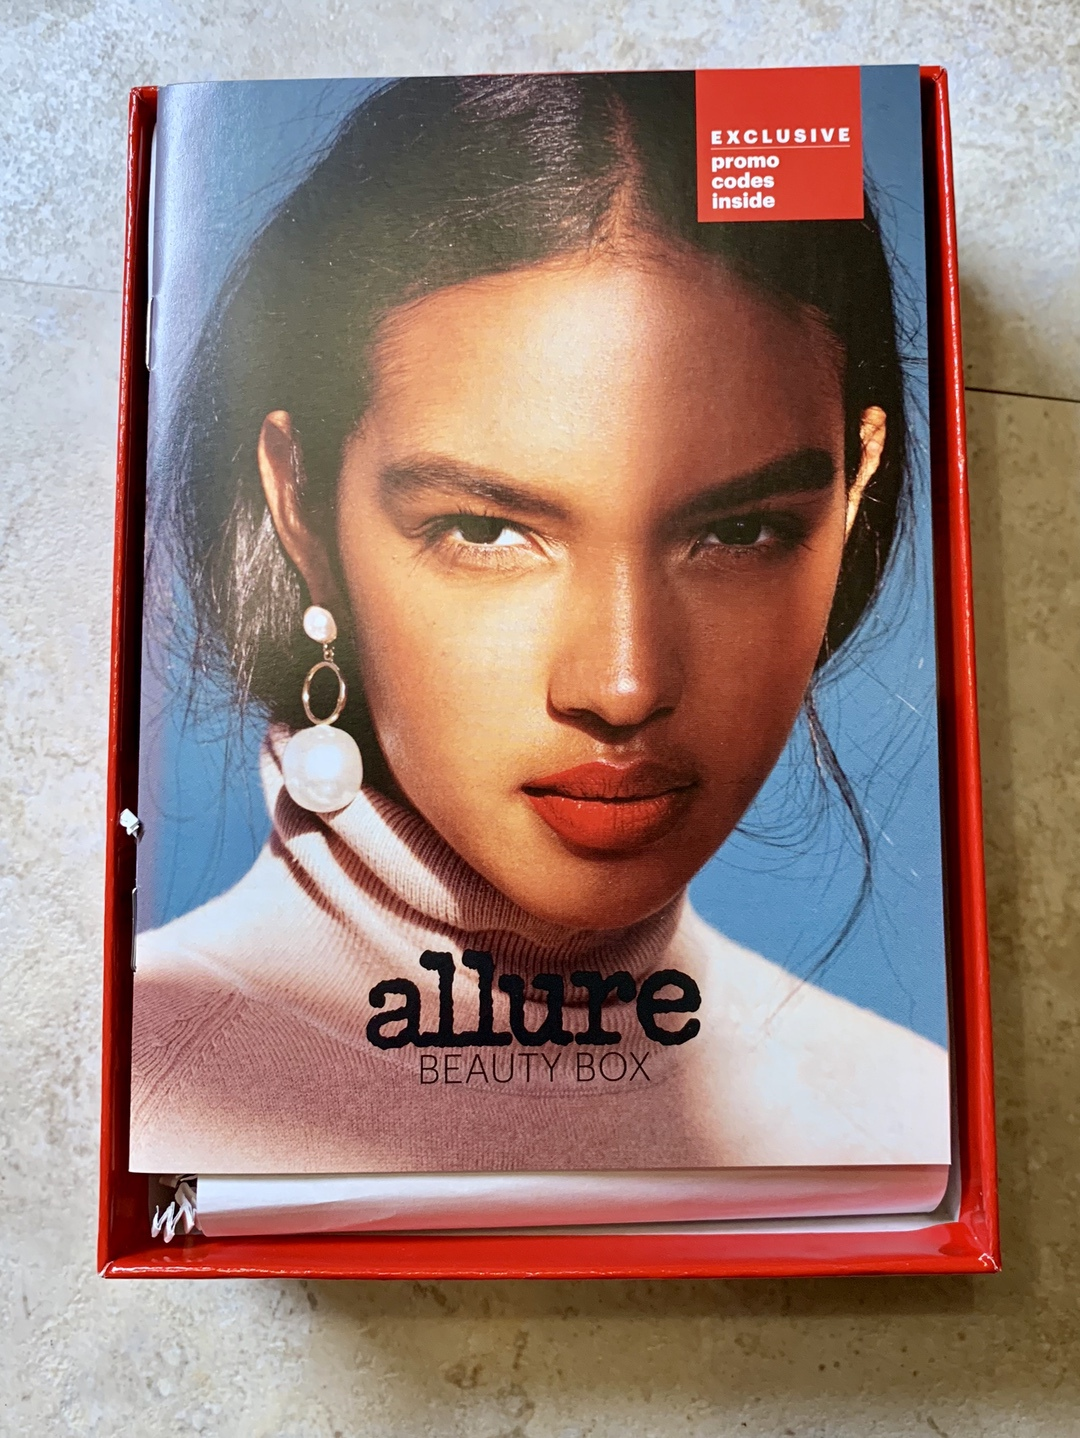 Allure Beauty Box October 2018 #Allure #AllureBeautyBox #beauty #makeup #subscriptionbox #beautyblogger